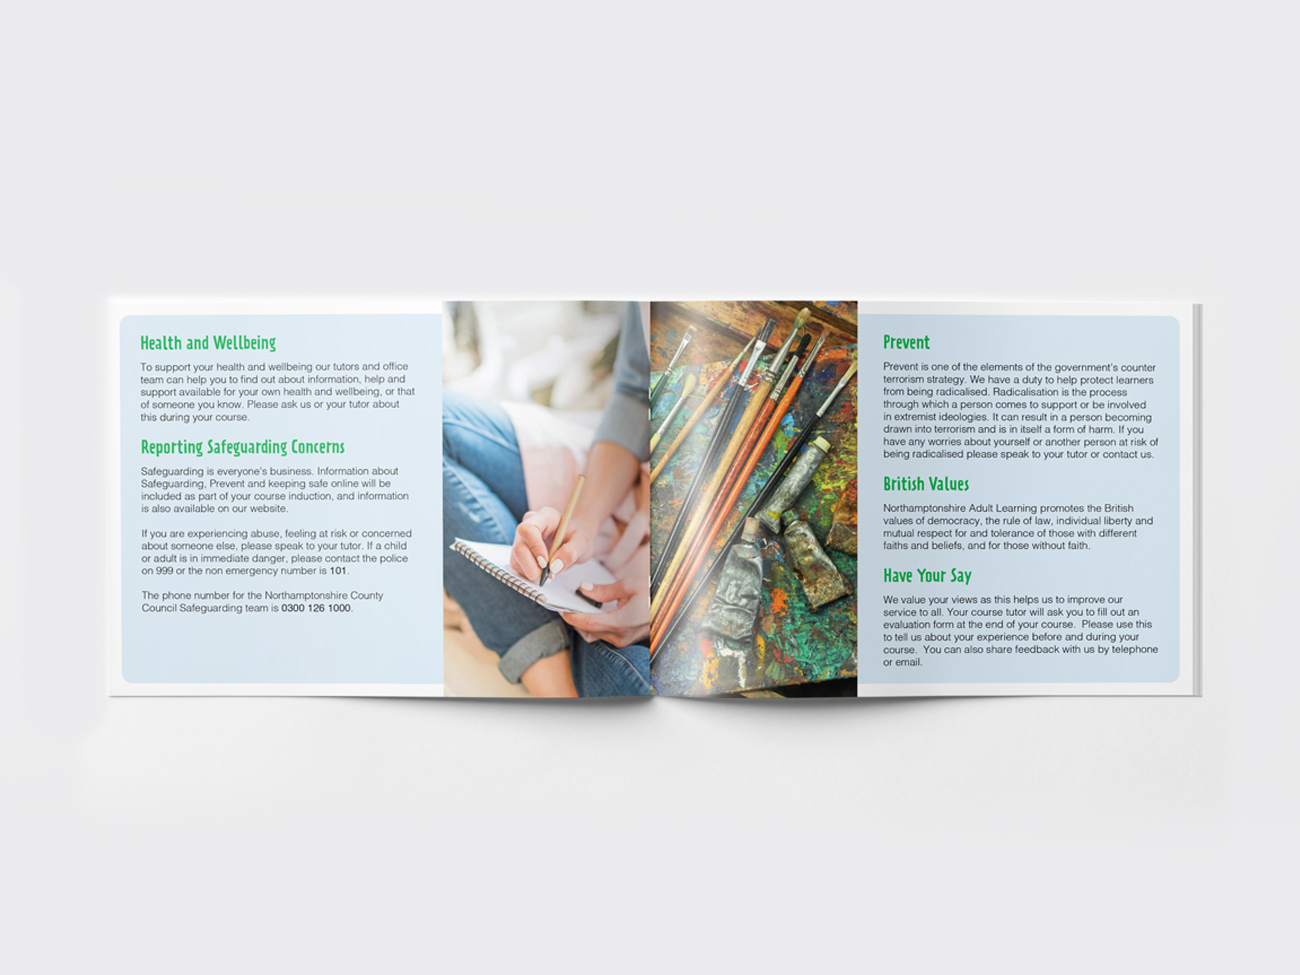 Centre pages of Adult Learning brochure